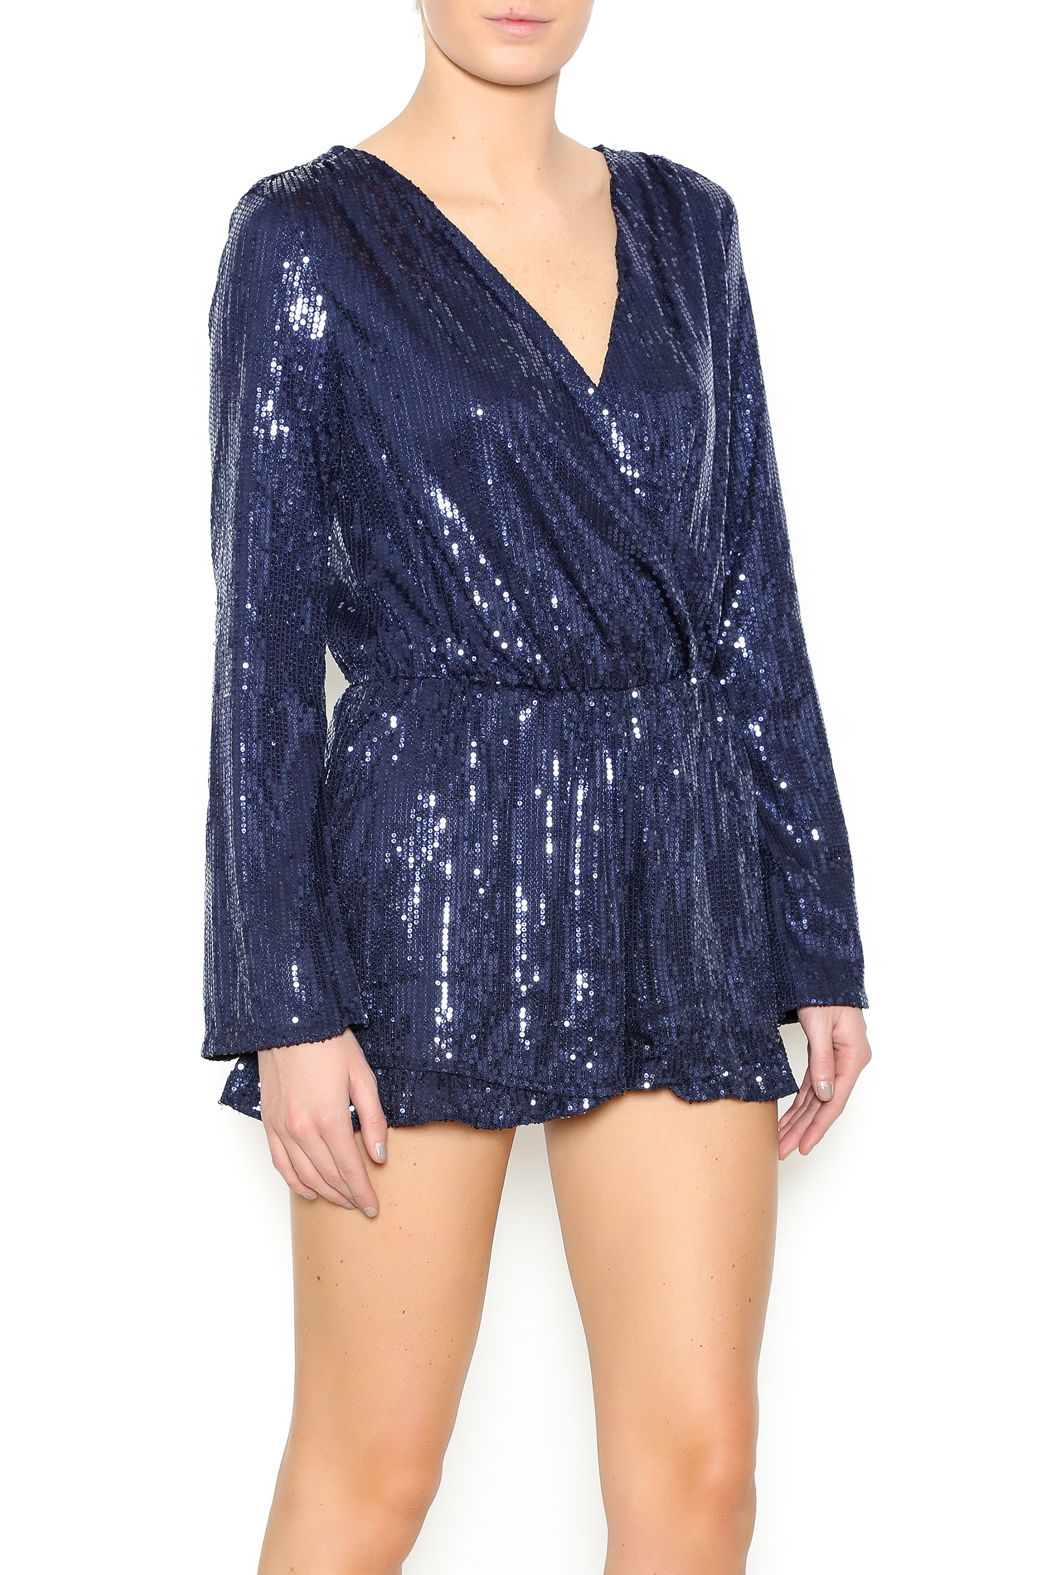 c8896cd5682 Clothing · Jumpsuits   Rompers · Rompers  Long Sleeve Sequin Romper. Honey  Punch ...